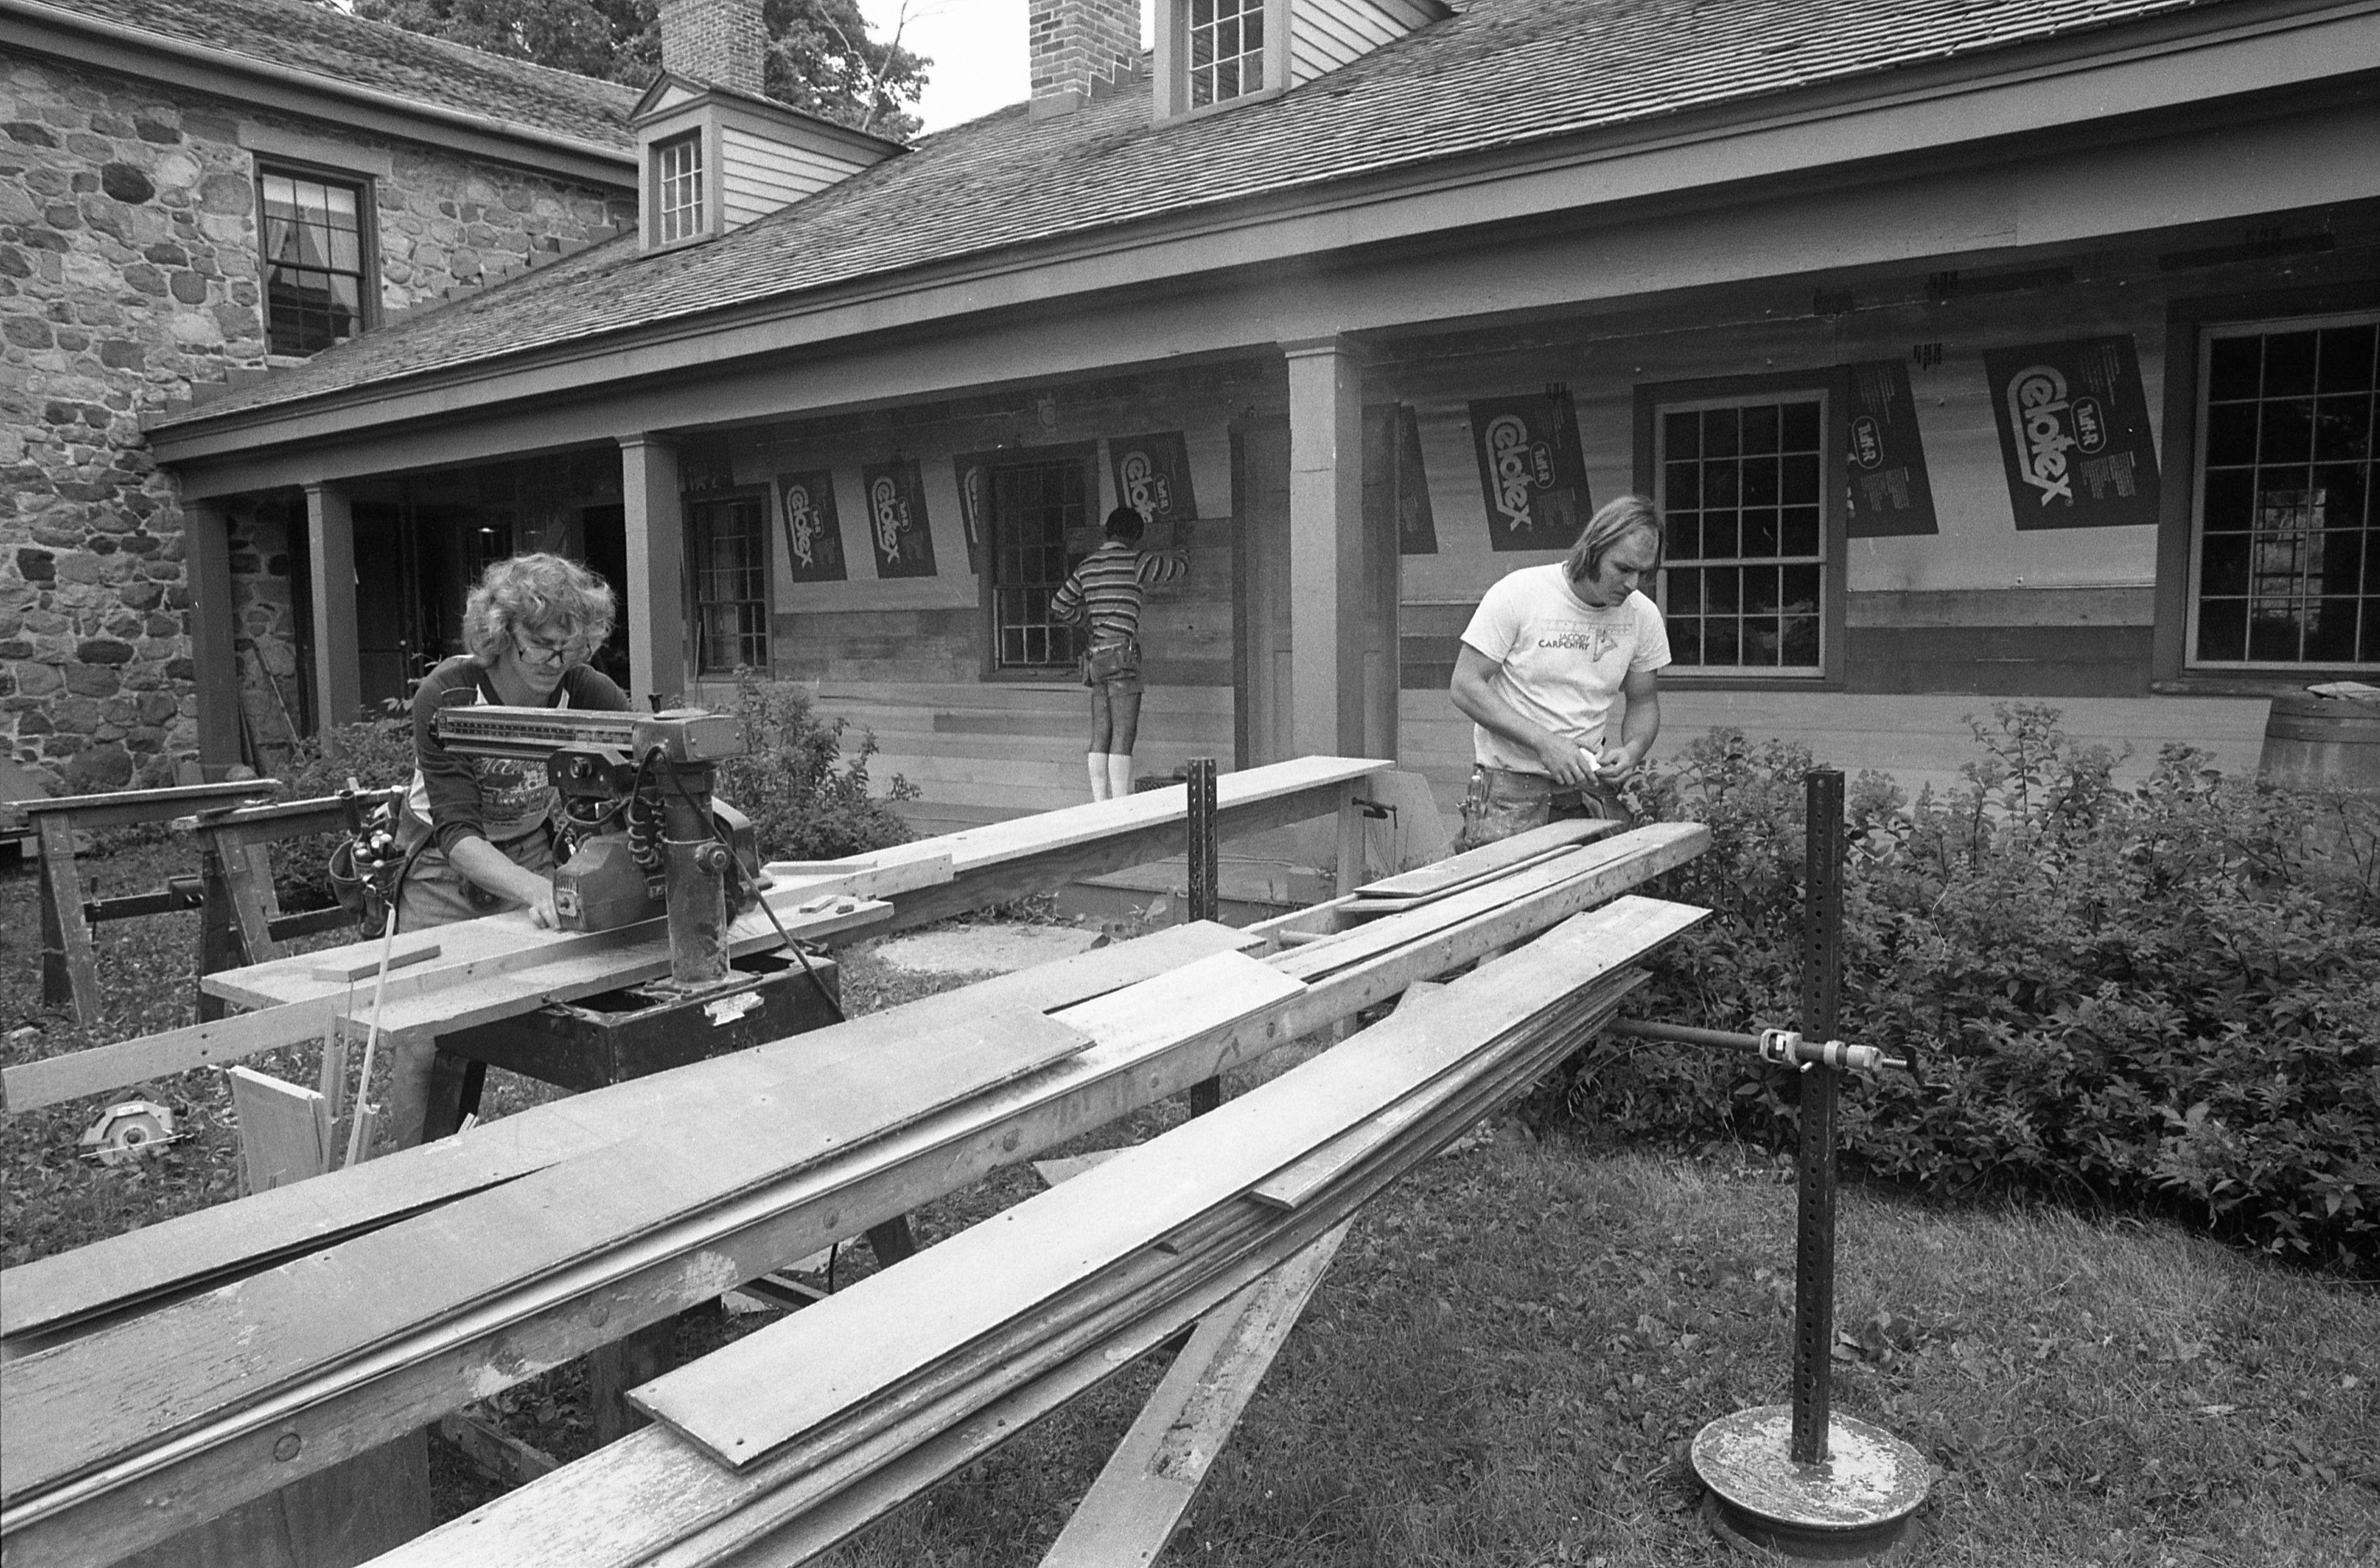 Cobblestone Farm House Gets New Siding, July 26, 1981 image